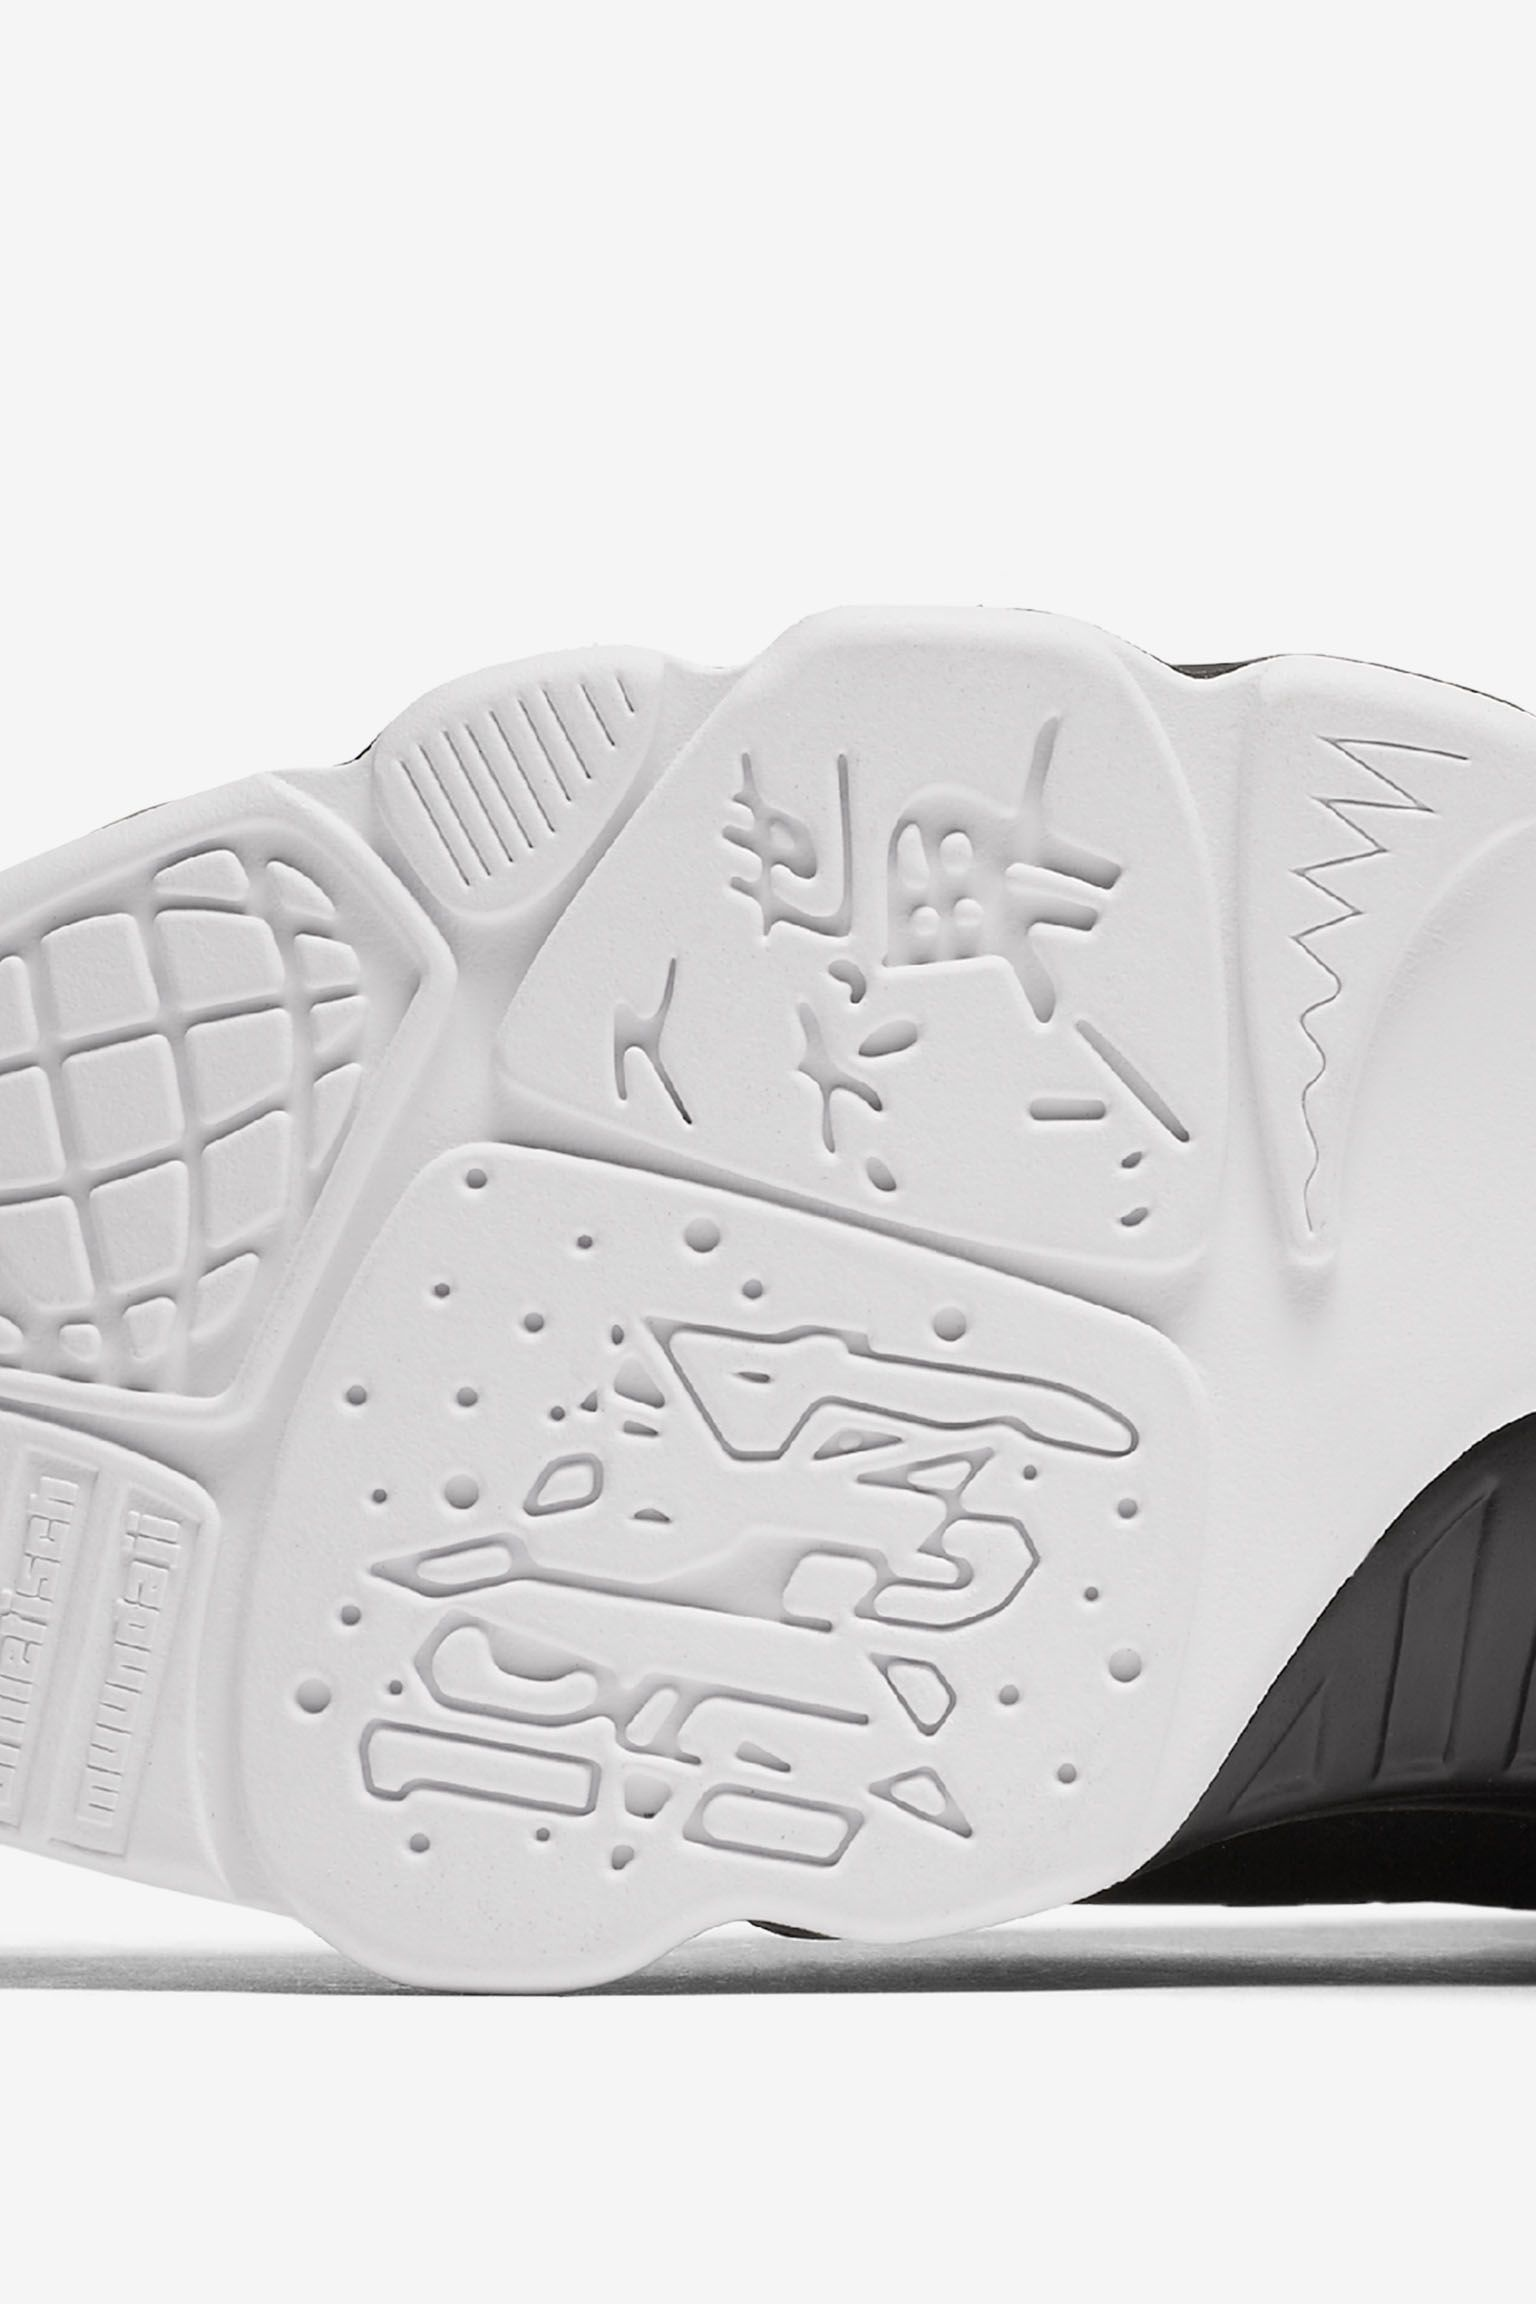 Air Jordan 9 Retro OG 'White & Black' 2016 Release Date.